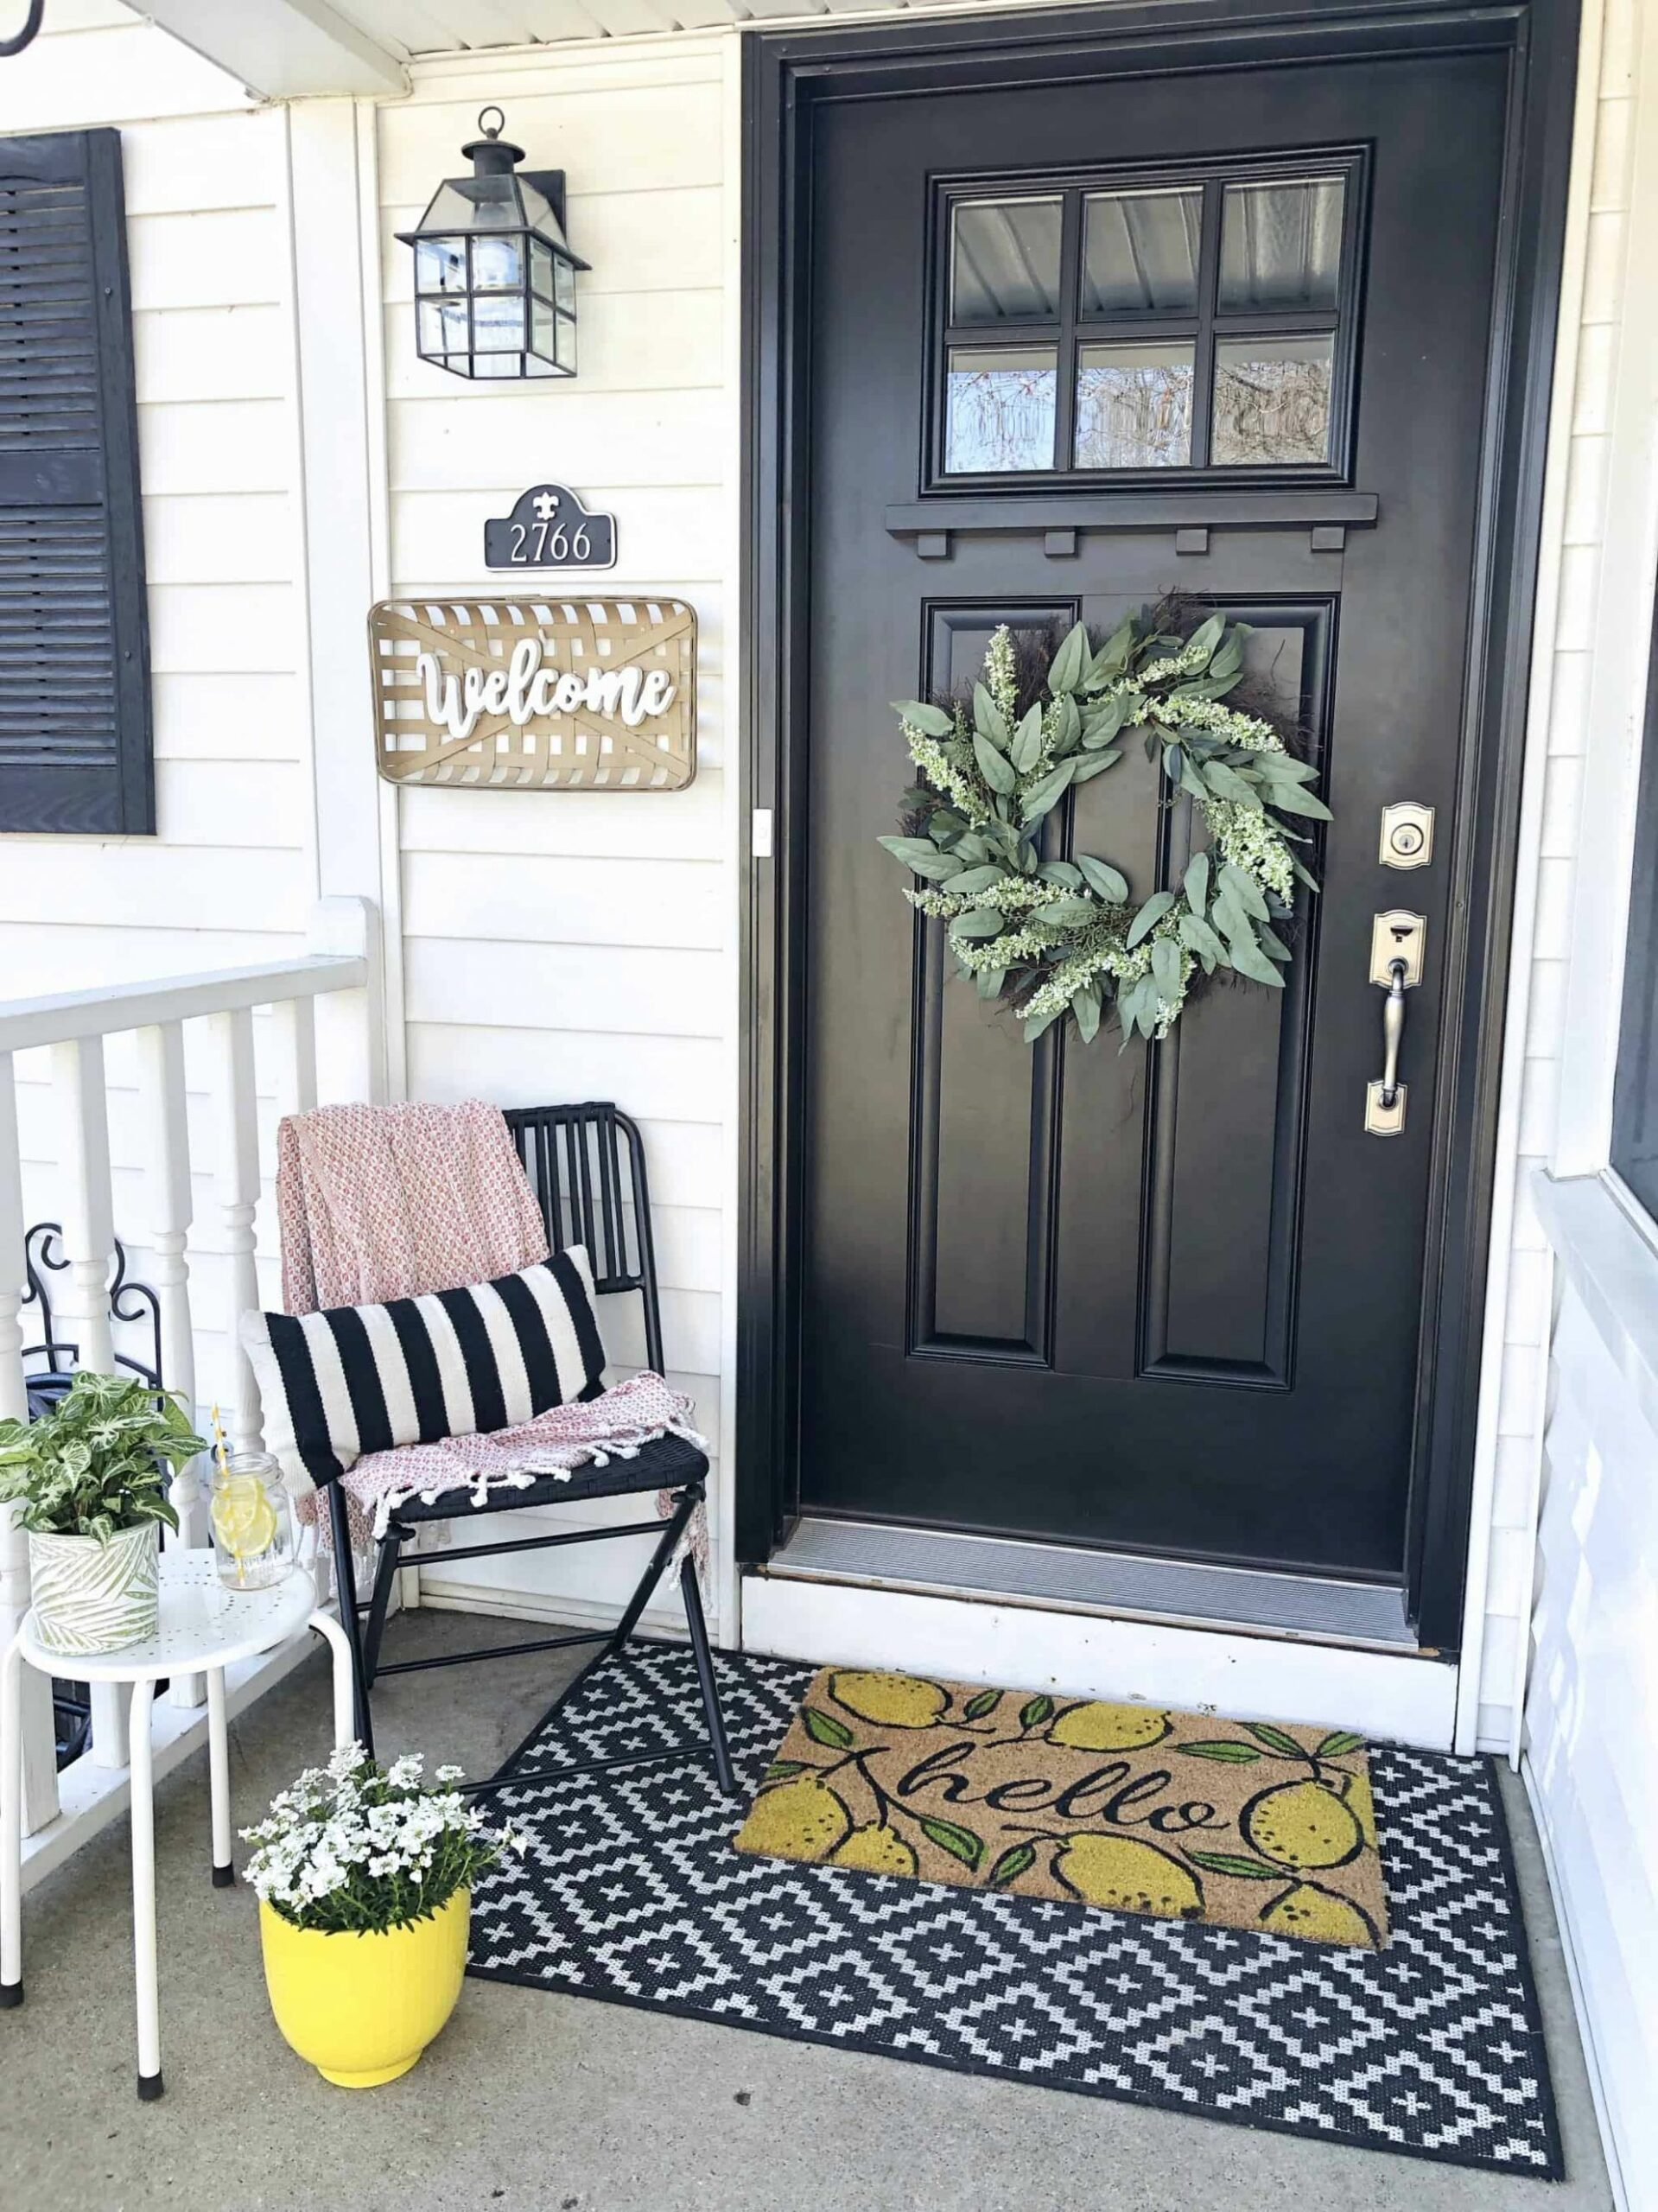 Spring Small Front Porch Decor: 12 Budget Friendly Decorating Ideas ...